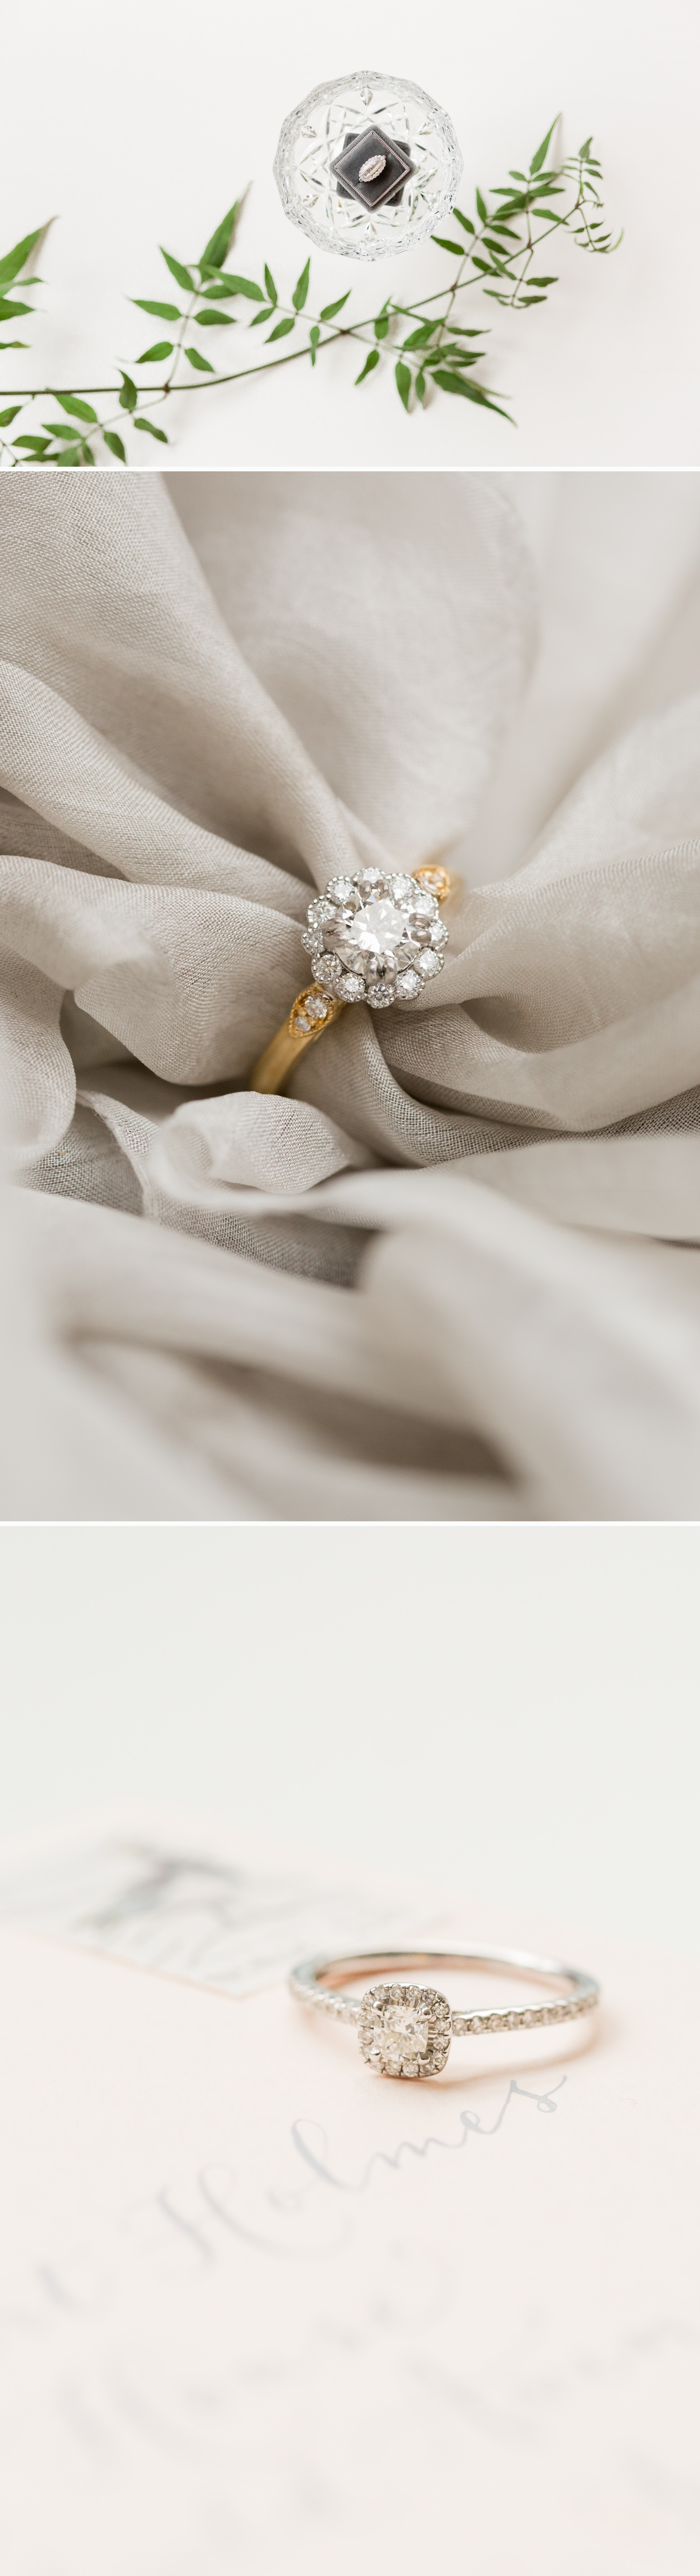 timeless engagement rings, diamond rings by Browns Family Jewellers, Harrogate